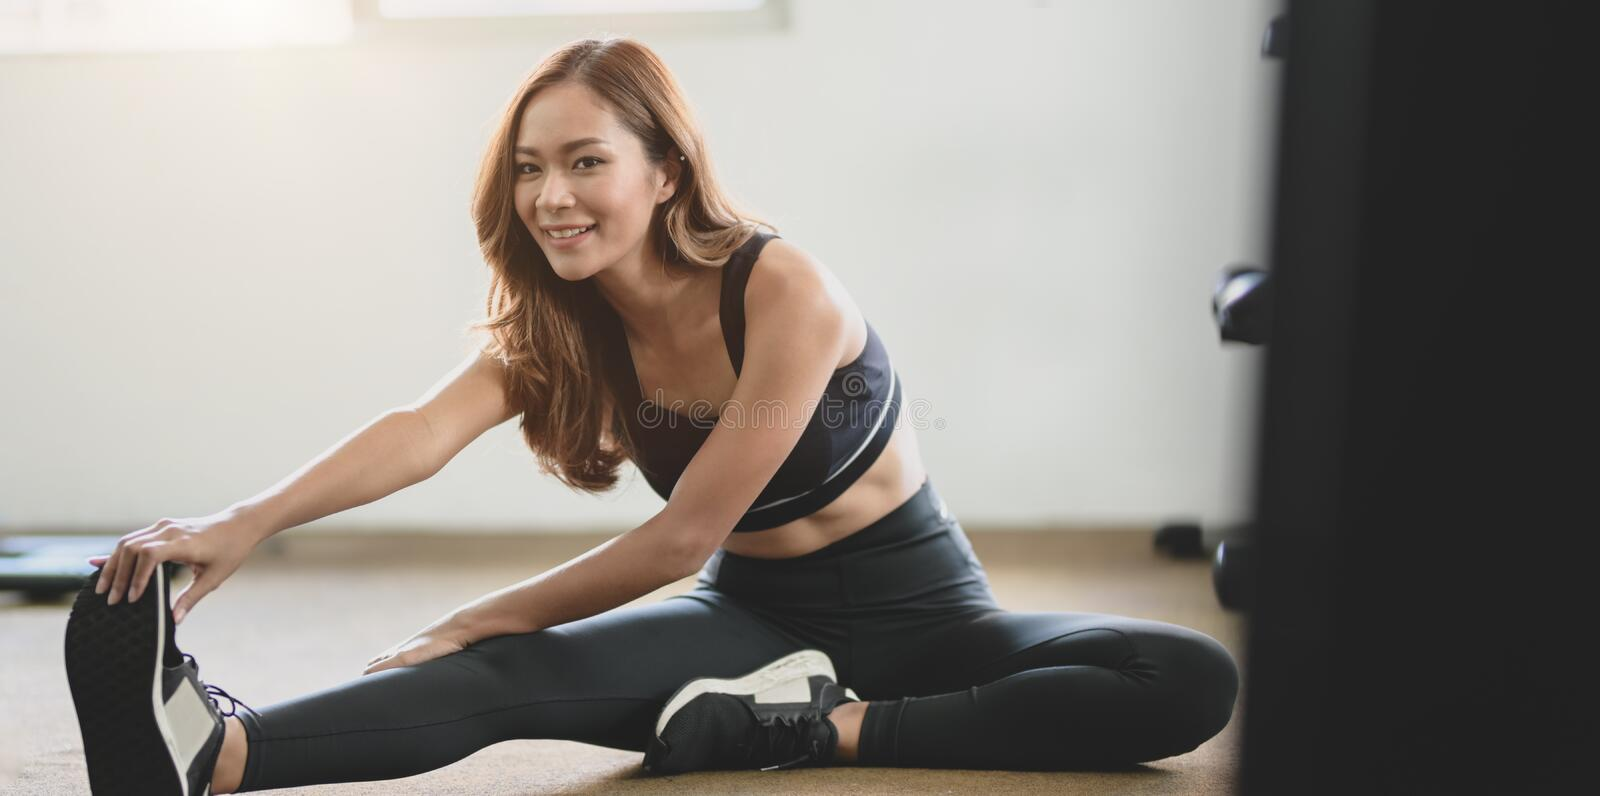 Beautiful fit Asian woman with tan and slim body stretching legs before exercise royalty free stock image